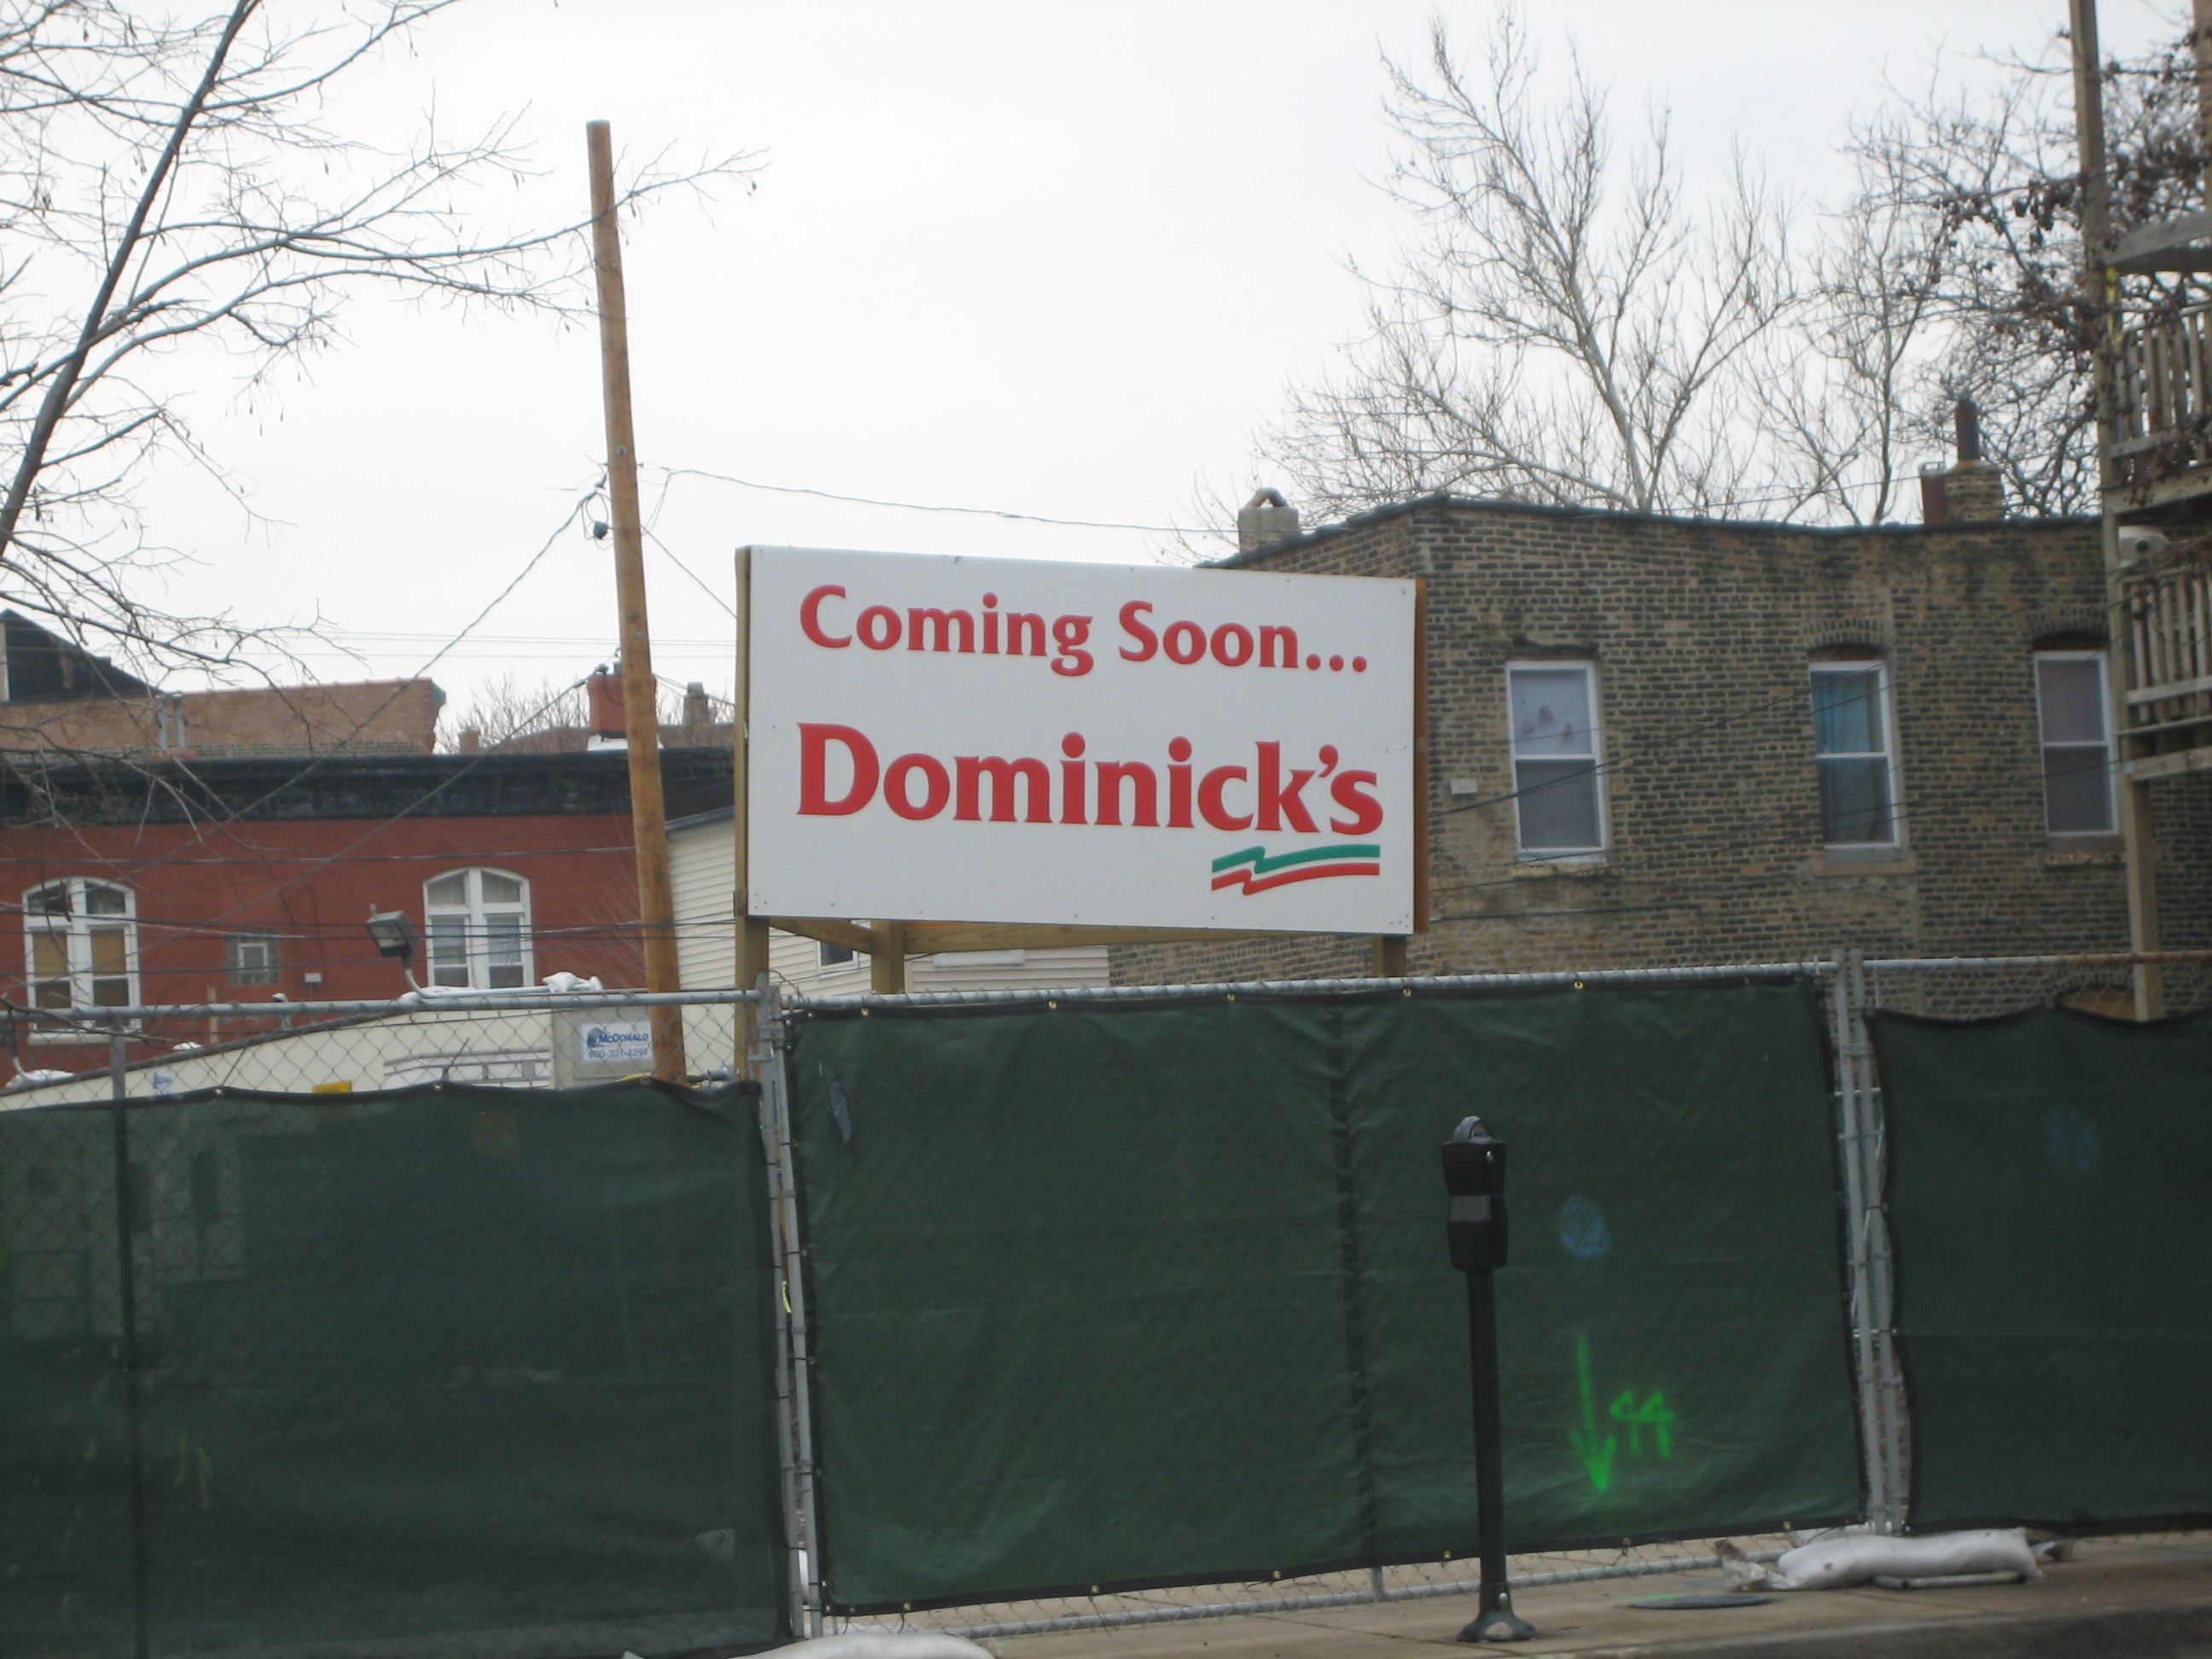 Dominick's almost ready to dominate Chicago Avenue in West Town